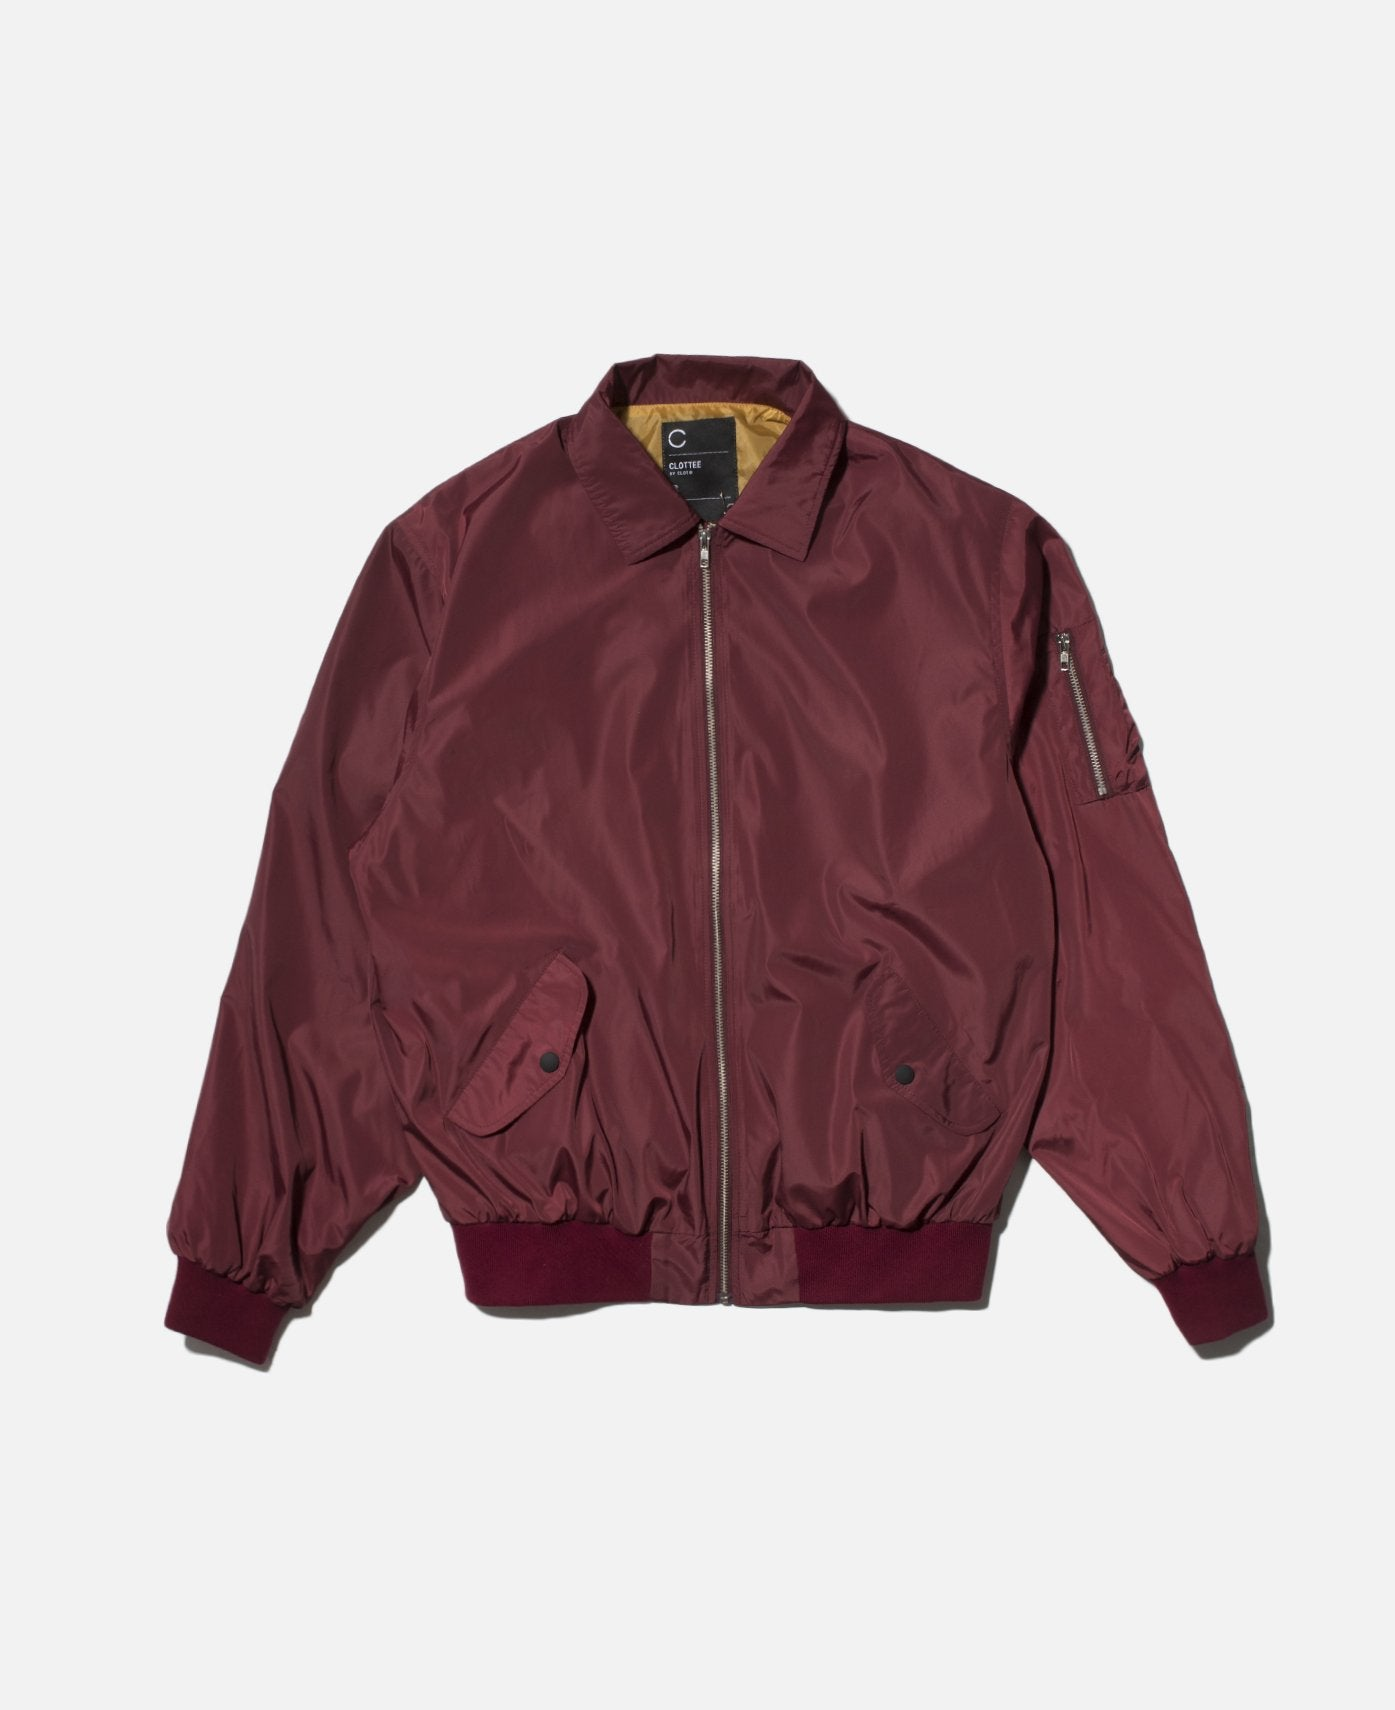 Pray For The Best Bomber Jacket